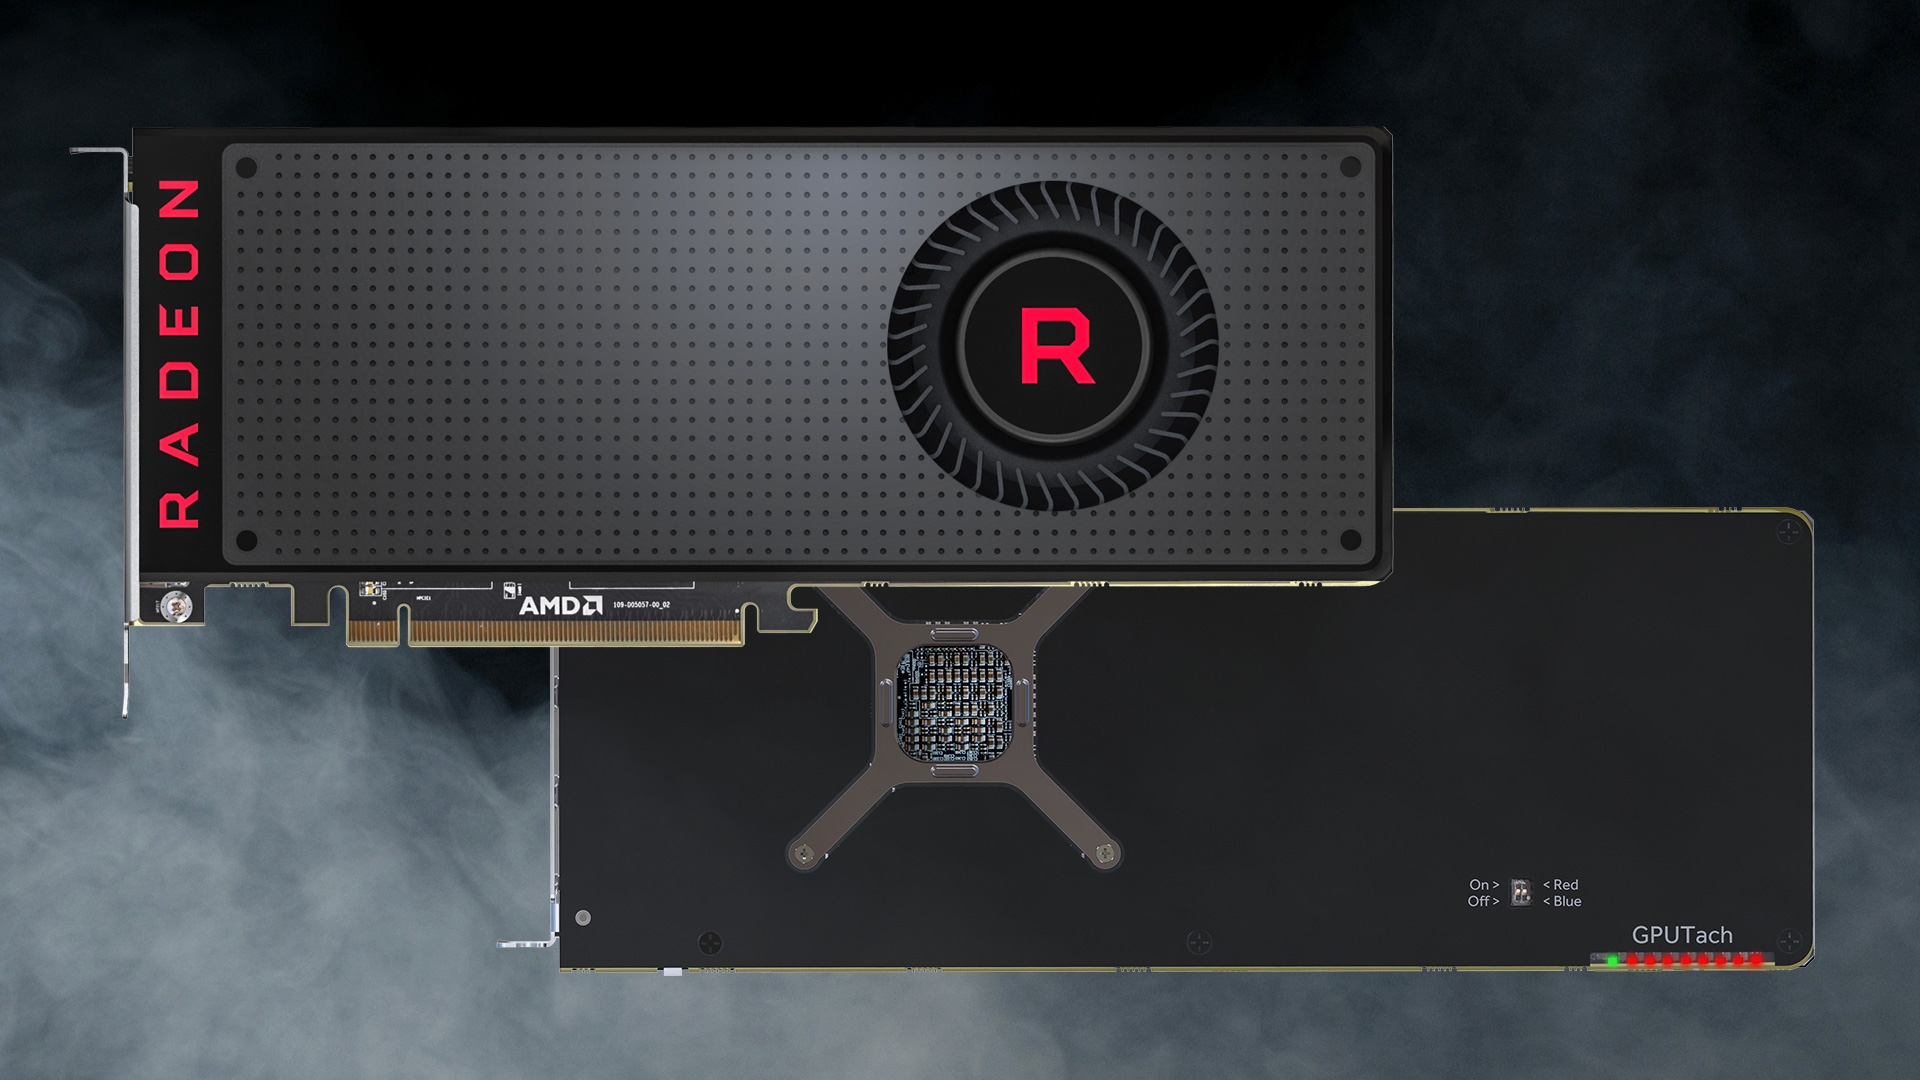 Radeon RX Vega 64 Hashrate  – Specification, Testing and Payback Period (Review)